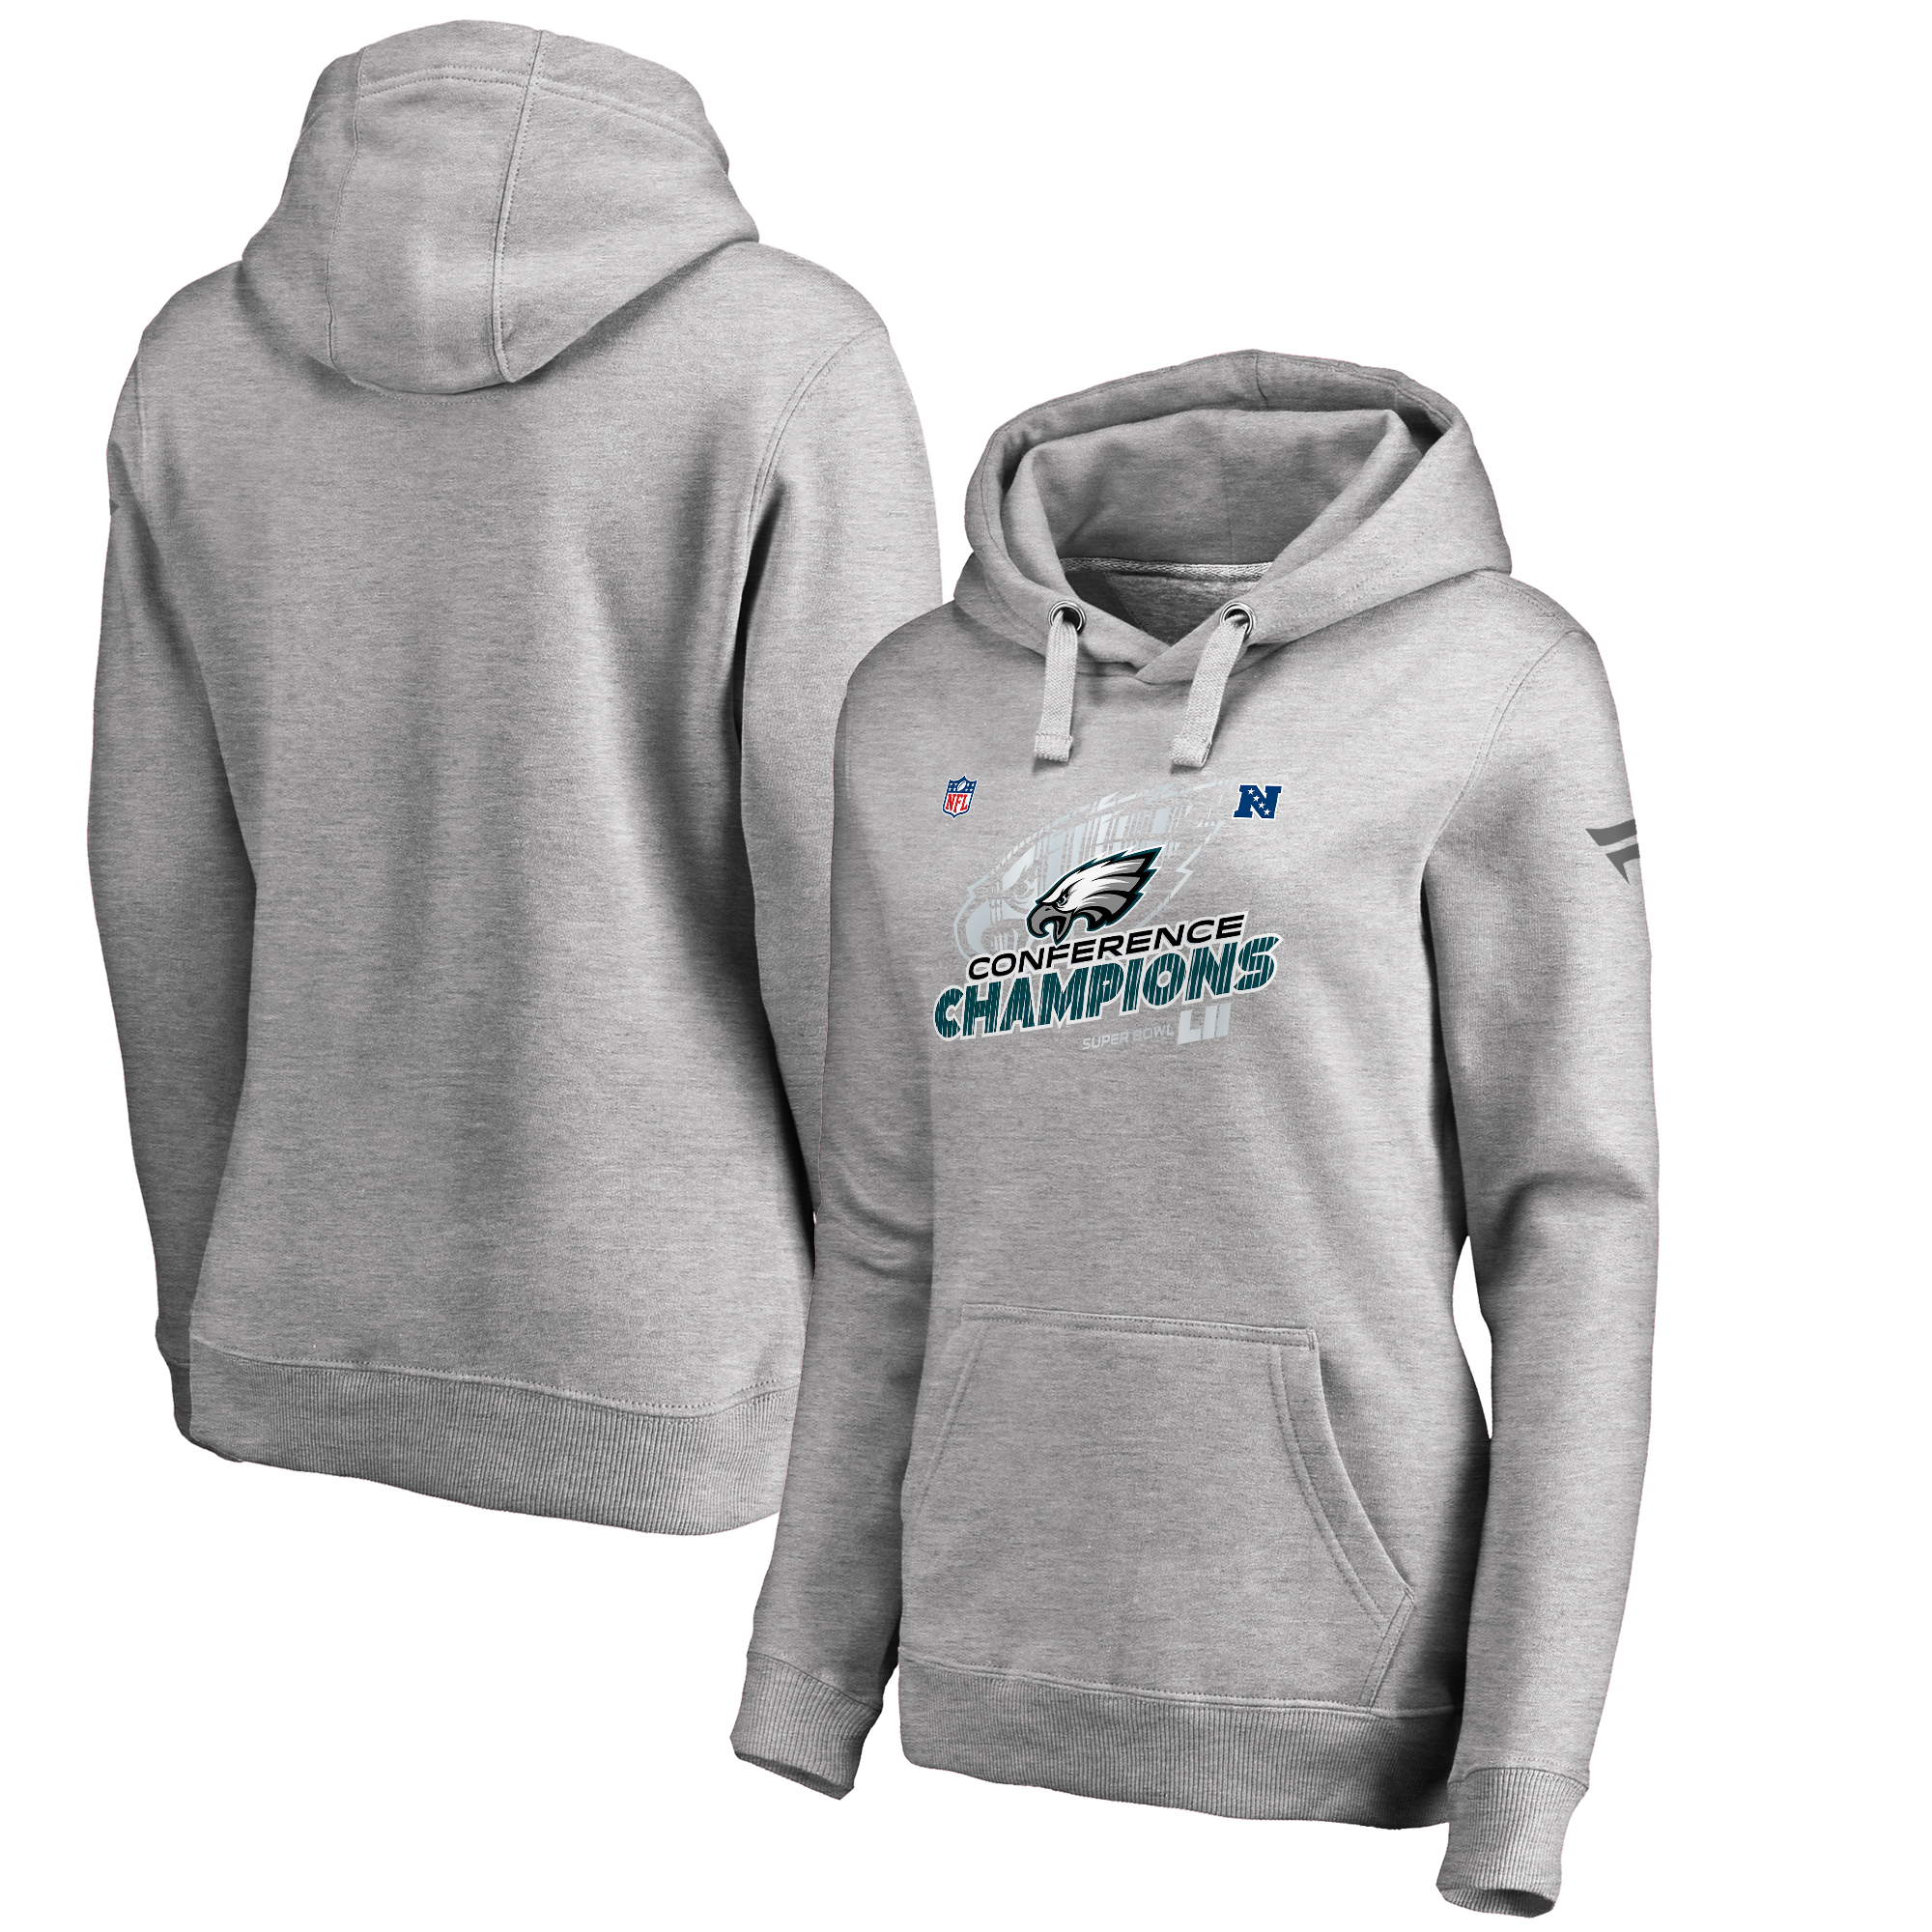 Philadelphia Eagles NFL Pro Line by Fanatics Branded Women's 2017 NFC Champions Trophy Collection Locker Room Pullover Hoodie - Heather Gray